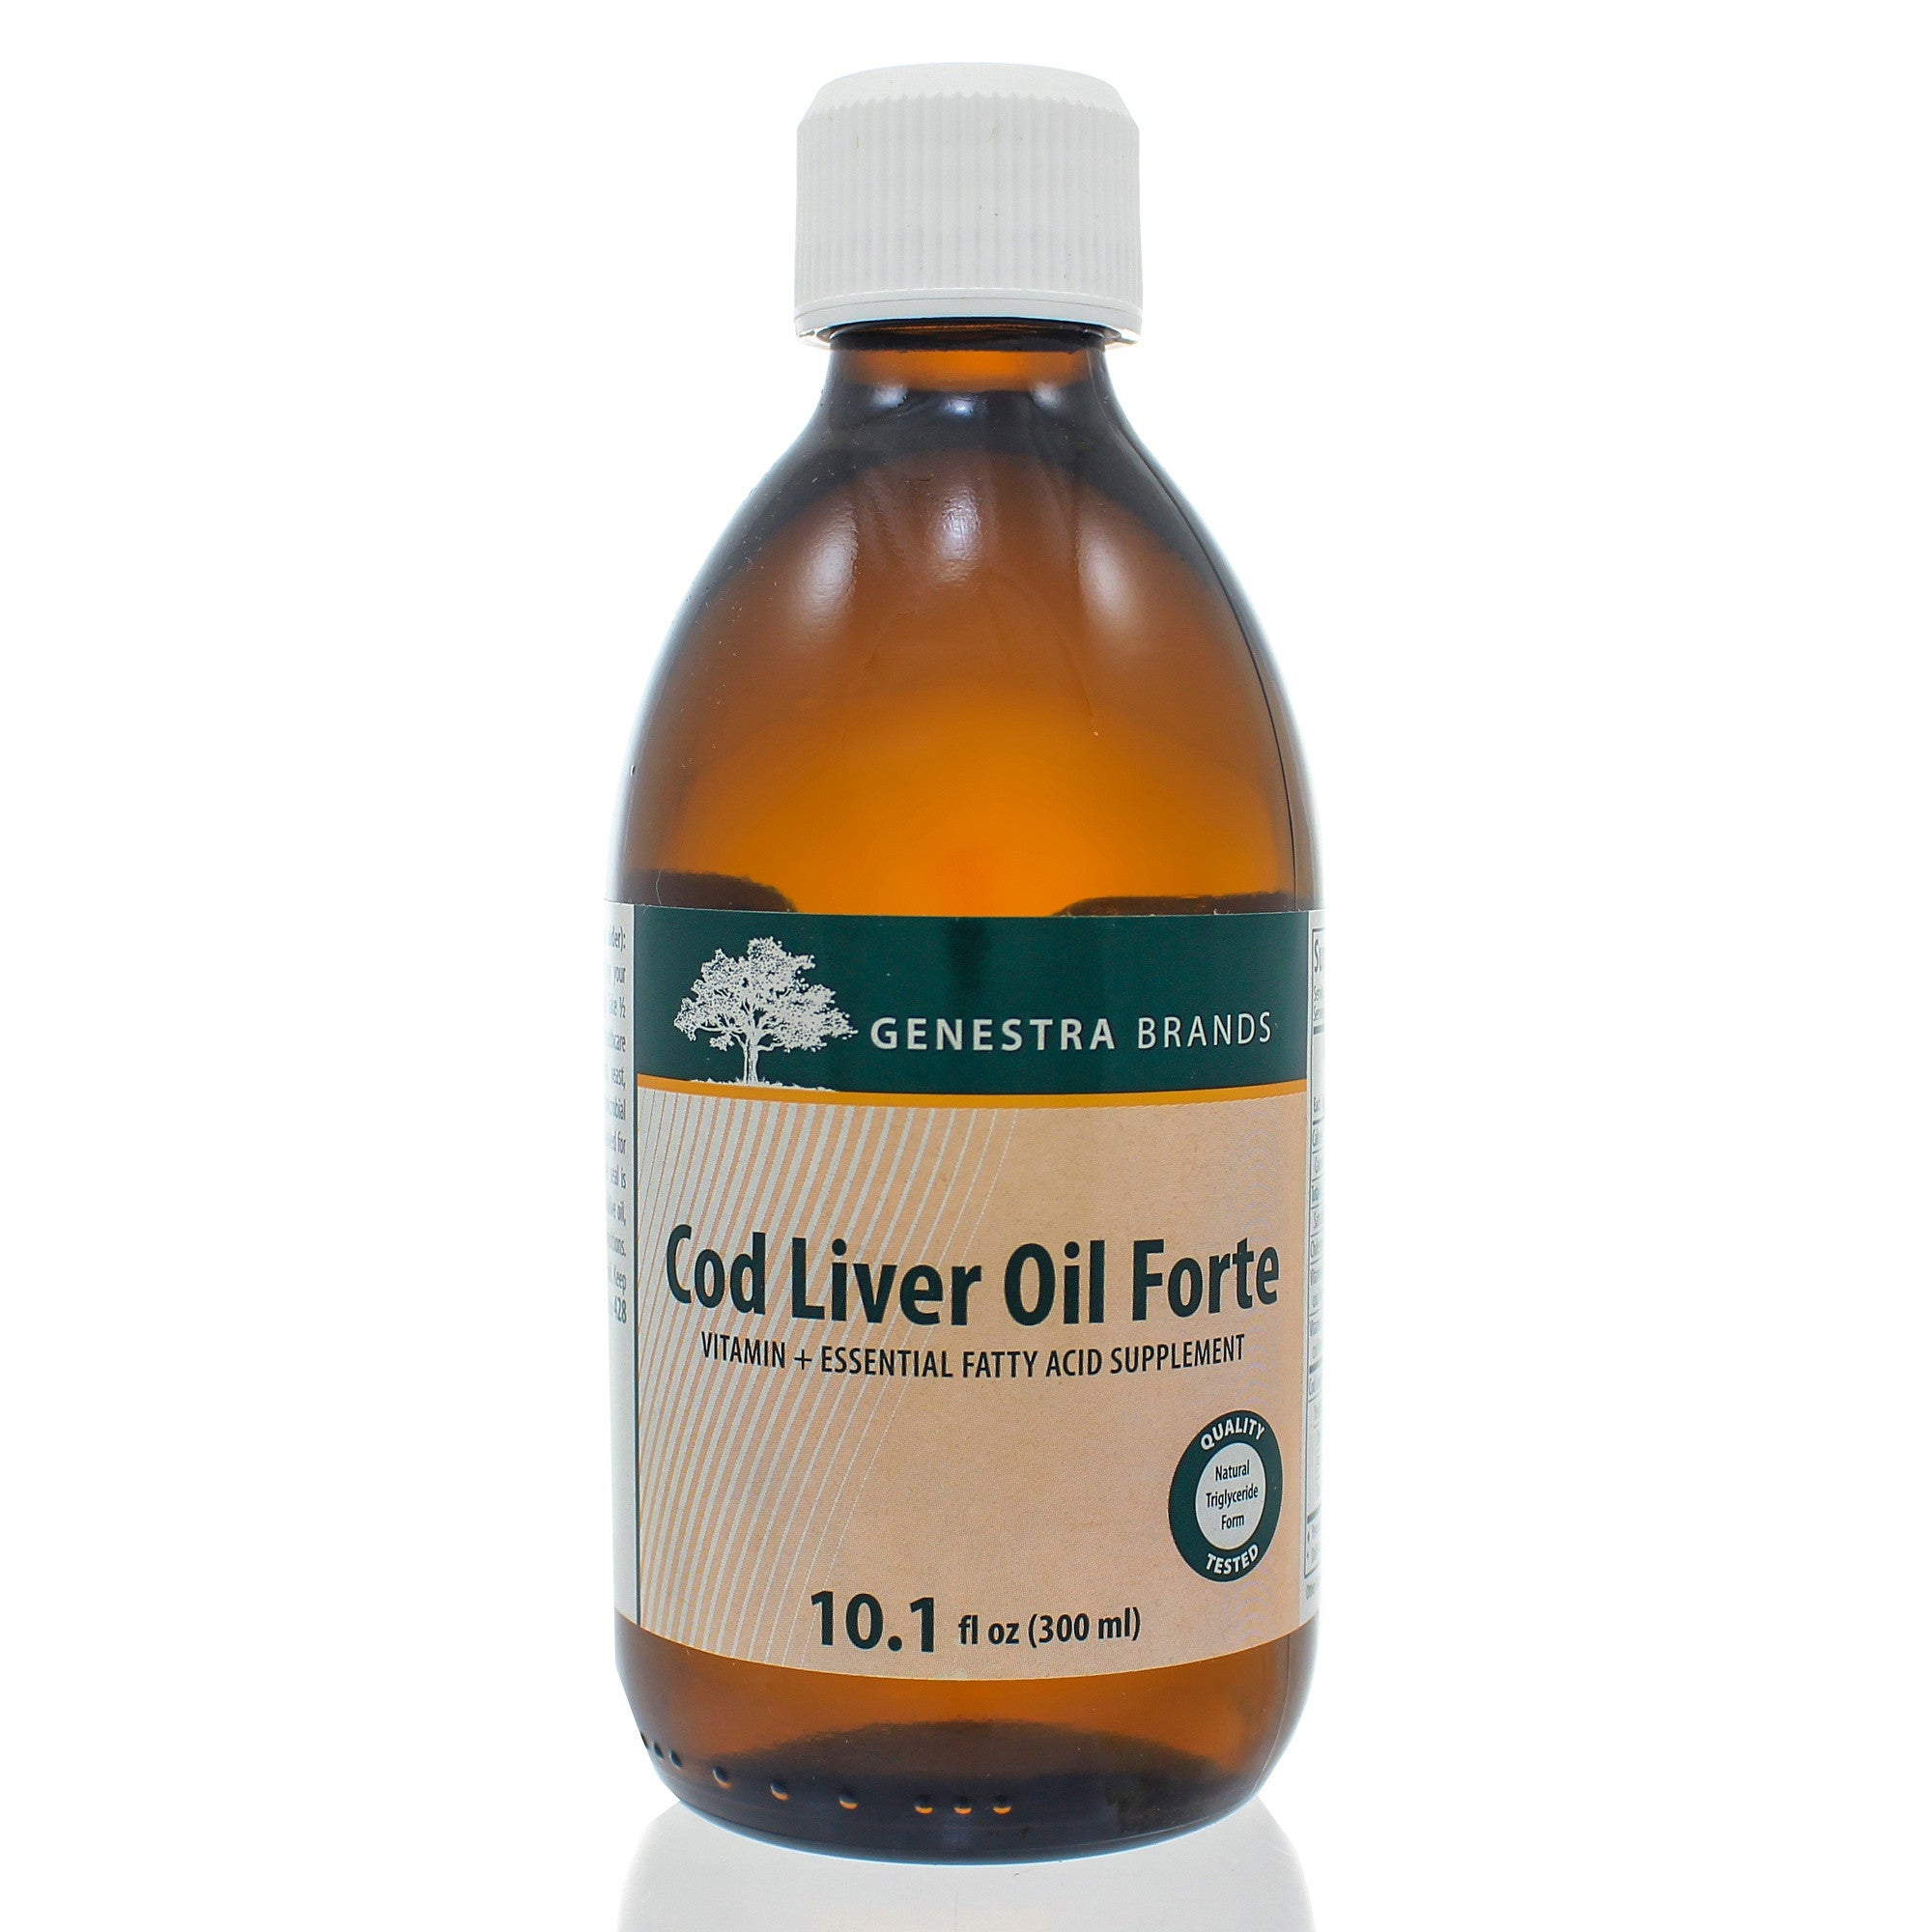 Cod Liver Oil Forte - Inspired Health Apothecary - Liquid Fish Oil, Antiinflammatory